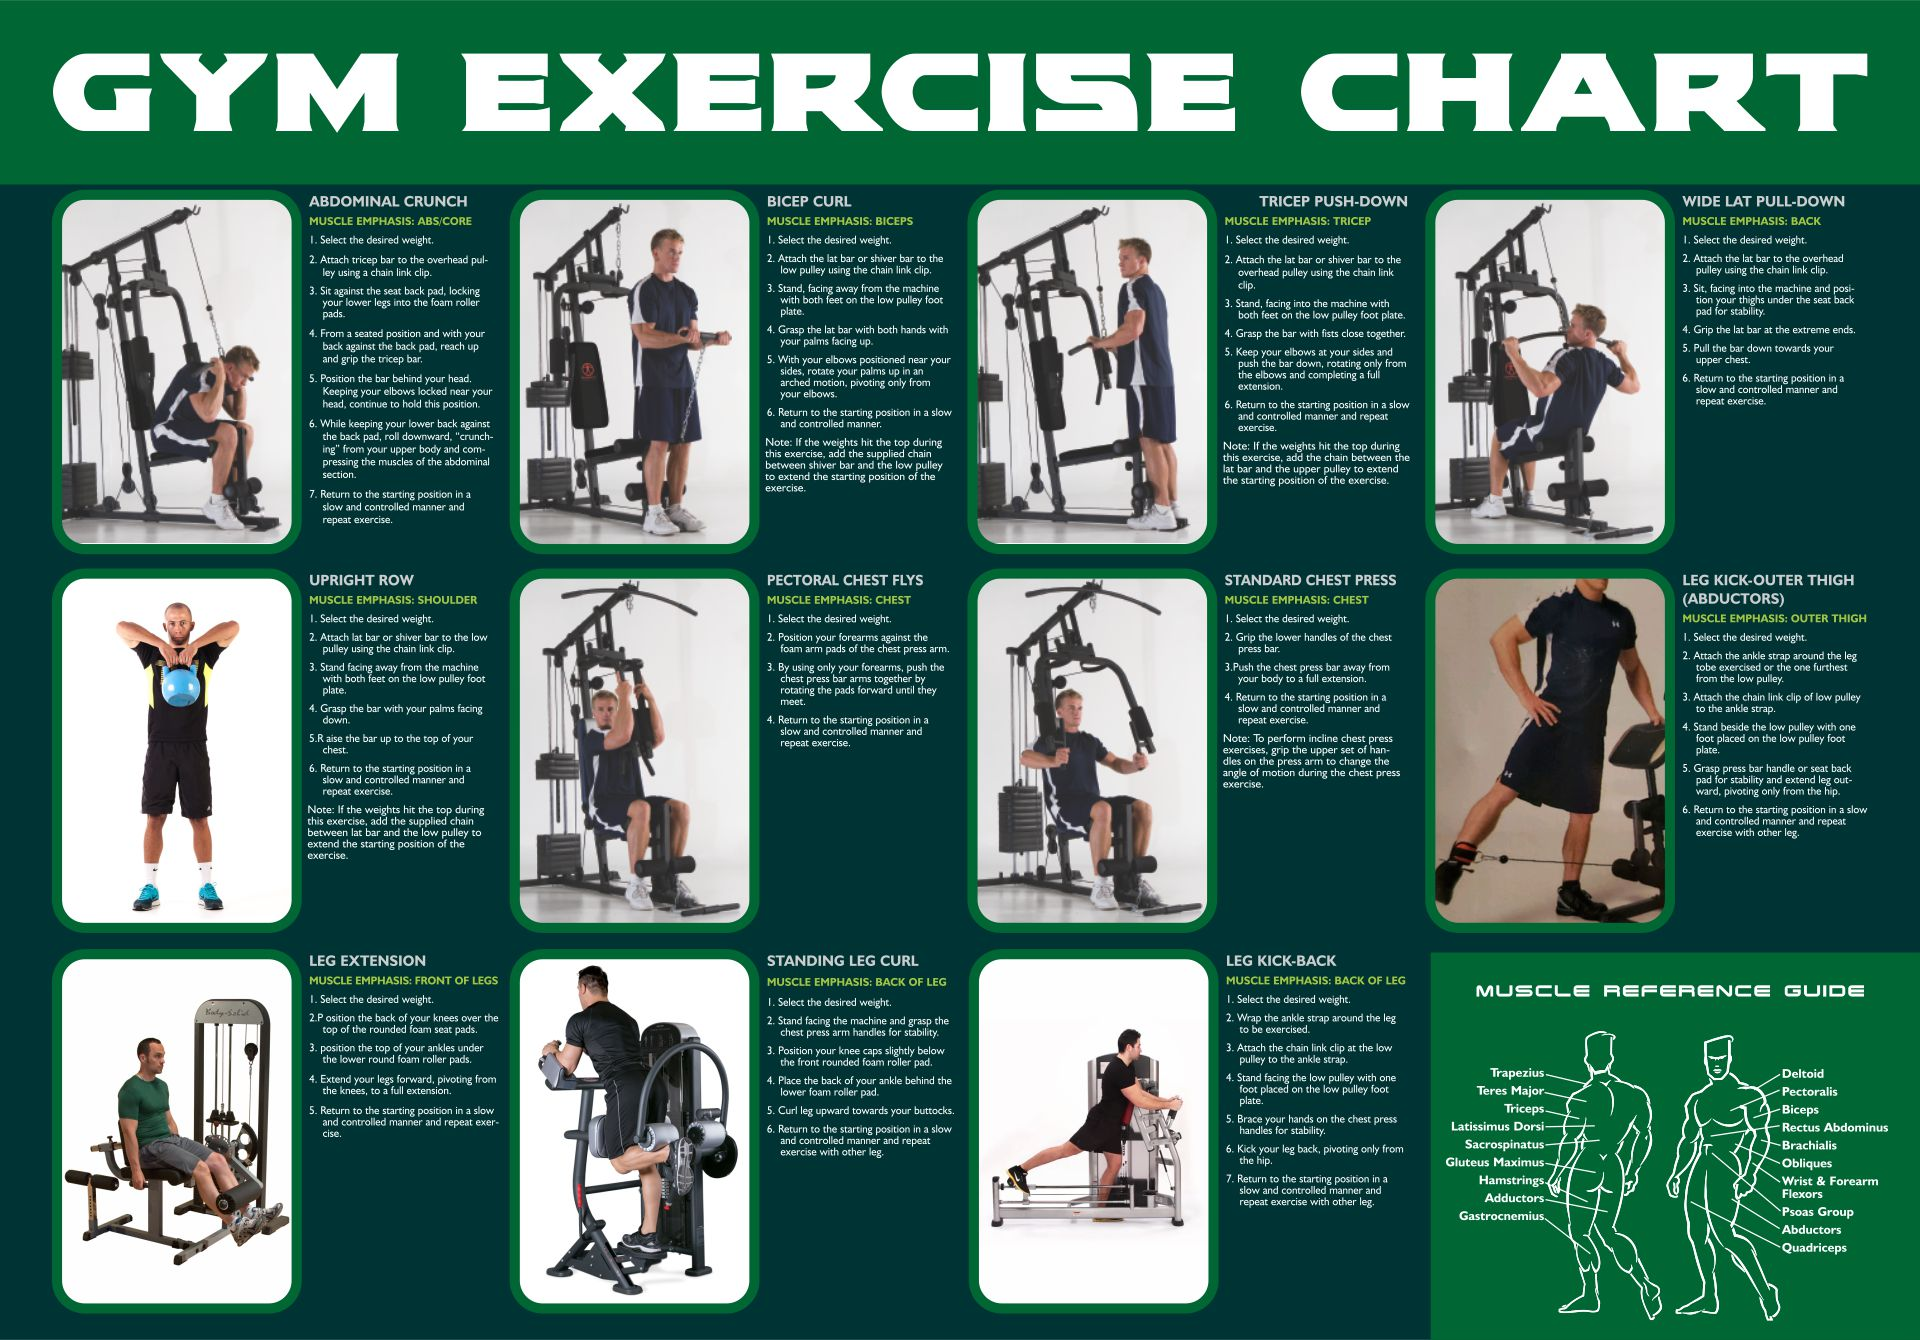 9 Best Images of Printable Chair Exercises For Seniors ...